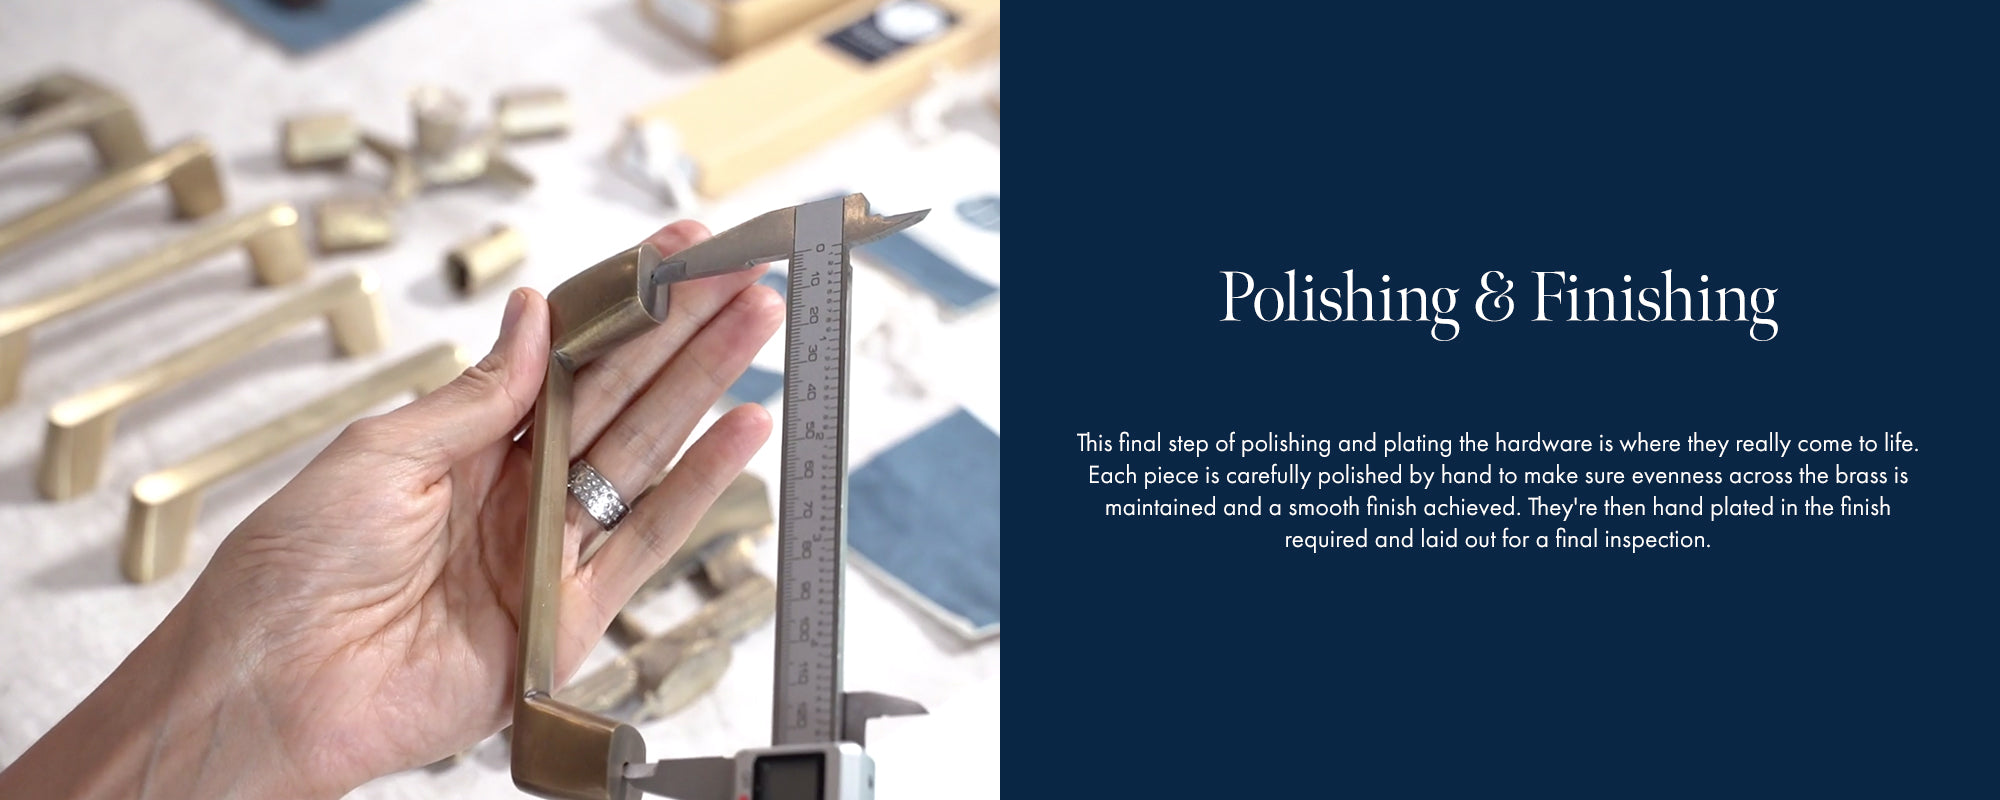 Our Design Process - Polishing and Finishing